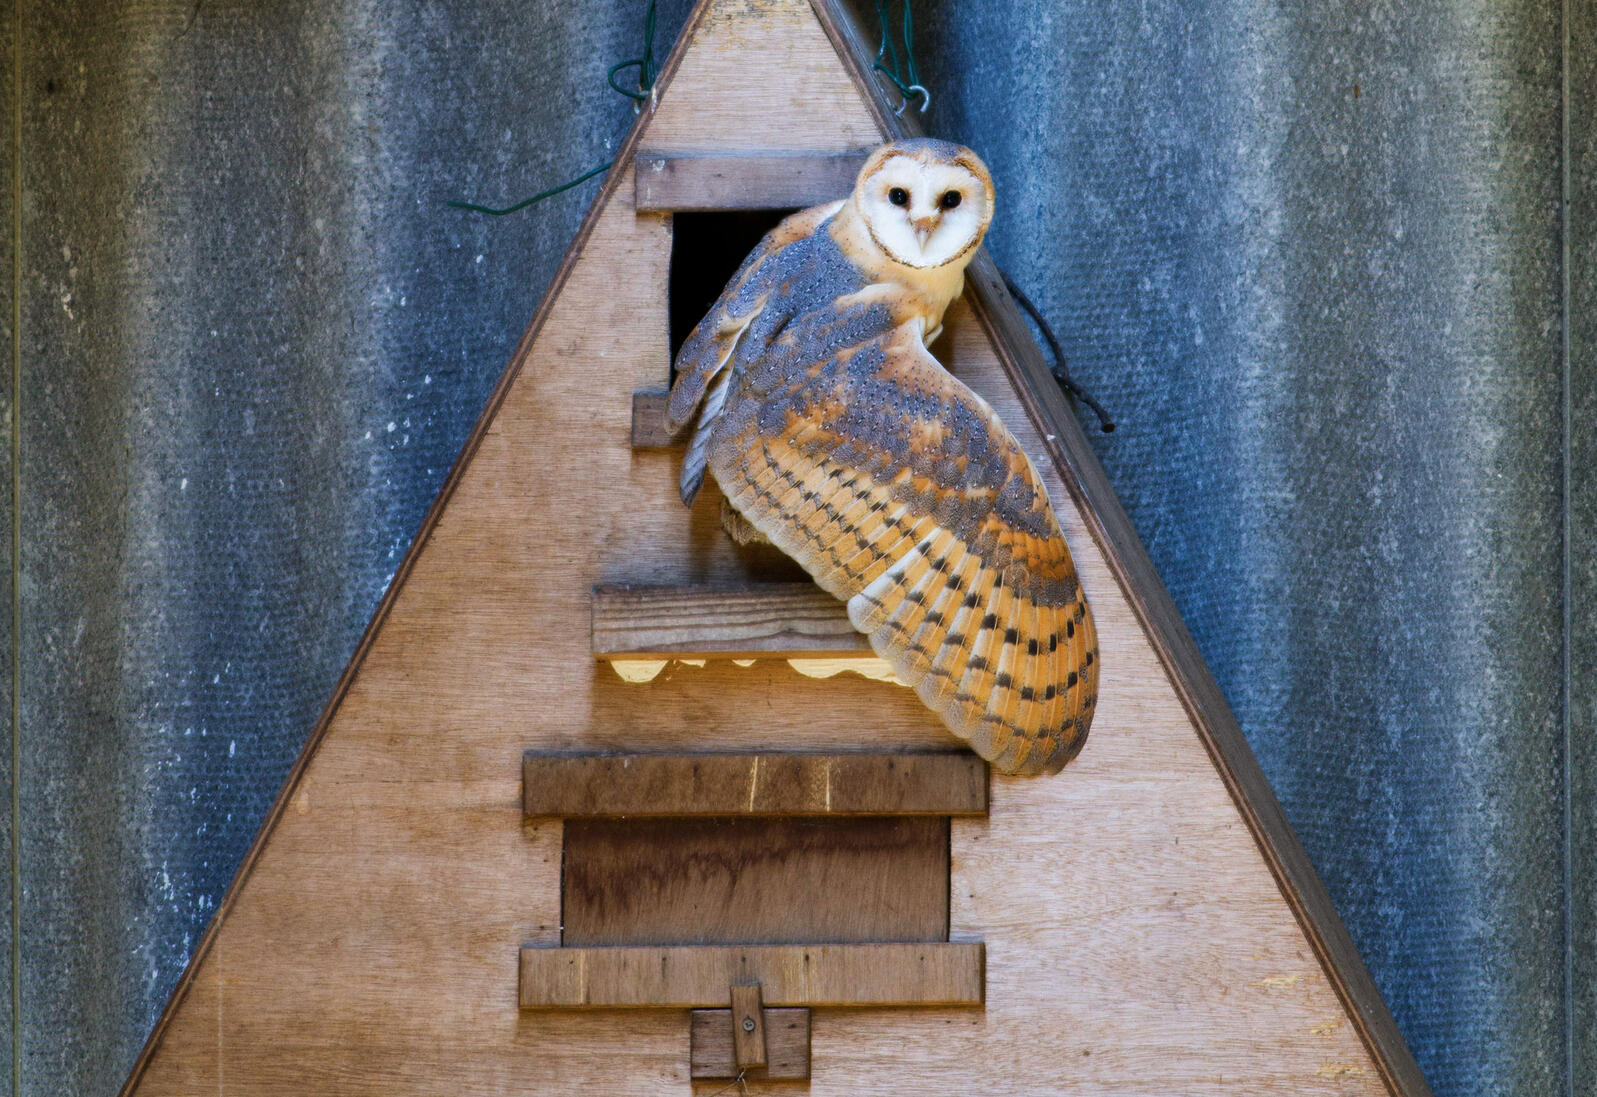 Building nest boxes for Barn Owls might help tamp down deer mice, according to a proposal—and also a hantavirus that can jump from mice to people. Lee Dalton/Alamy